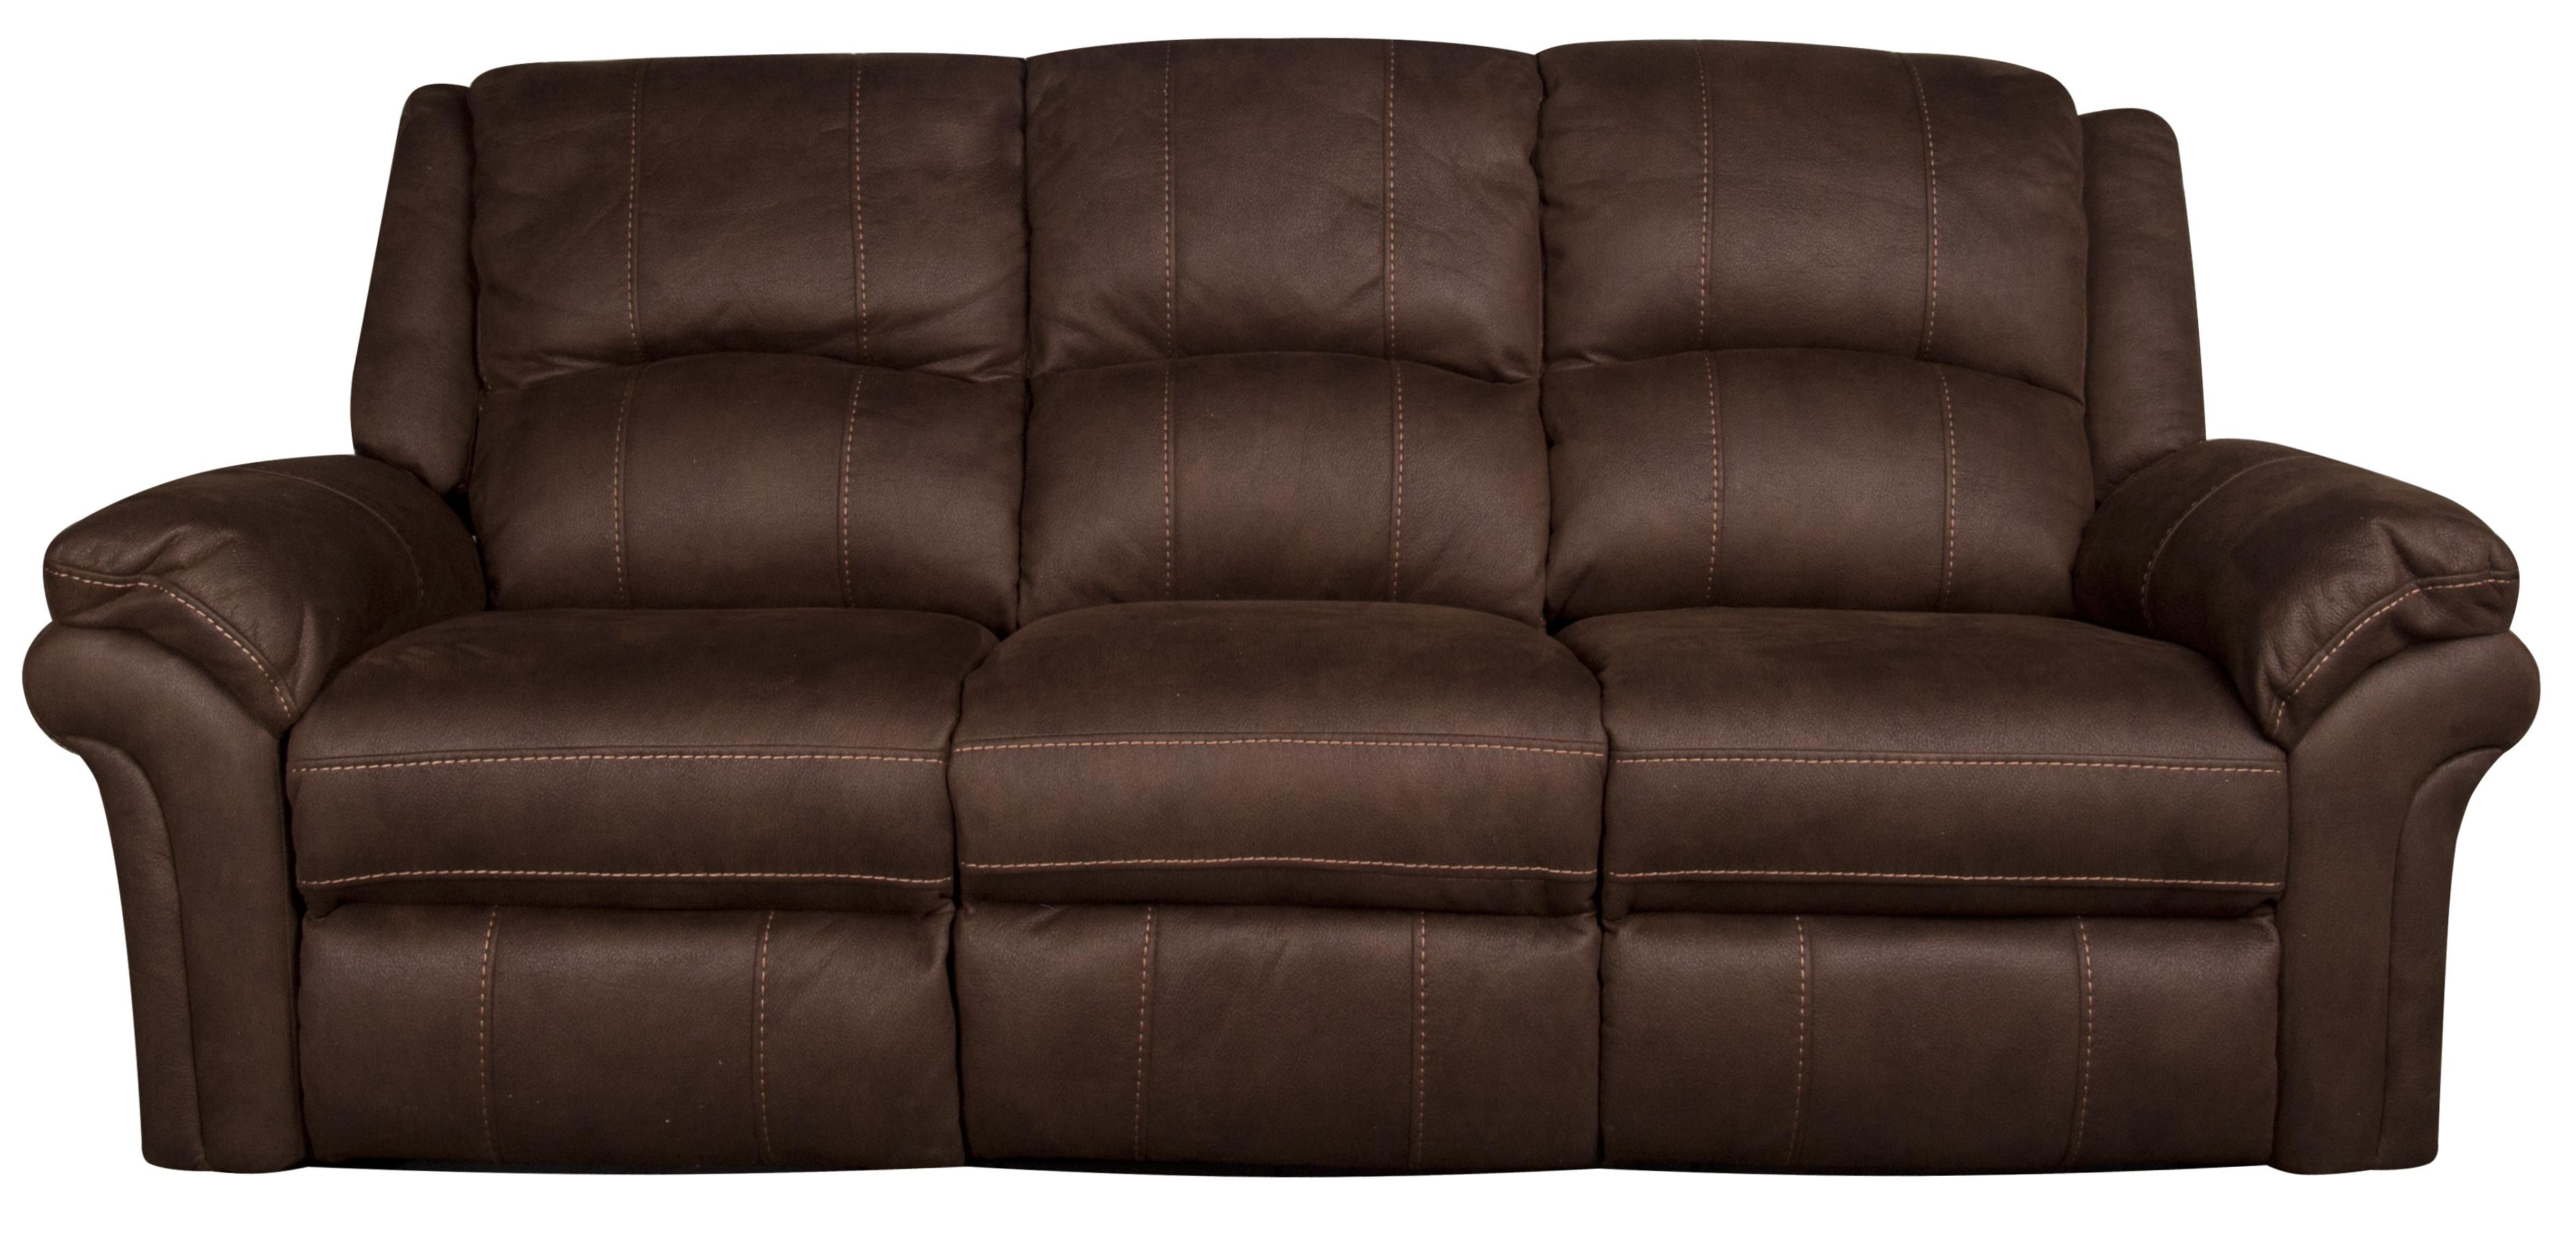 Morris Home Gary Gary Power Reclining Sofa - Item Number: 951990522